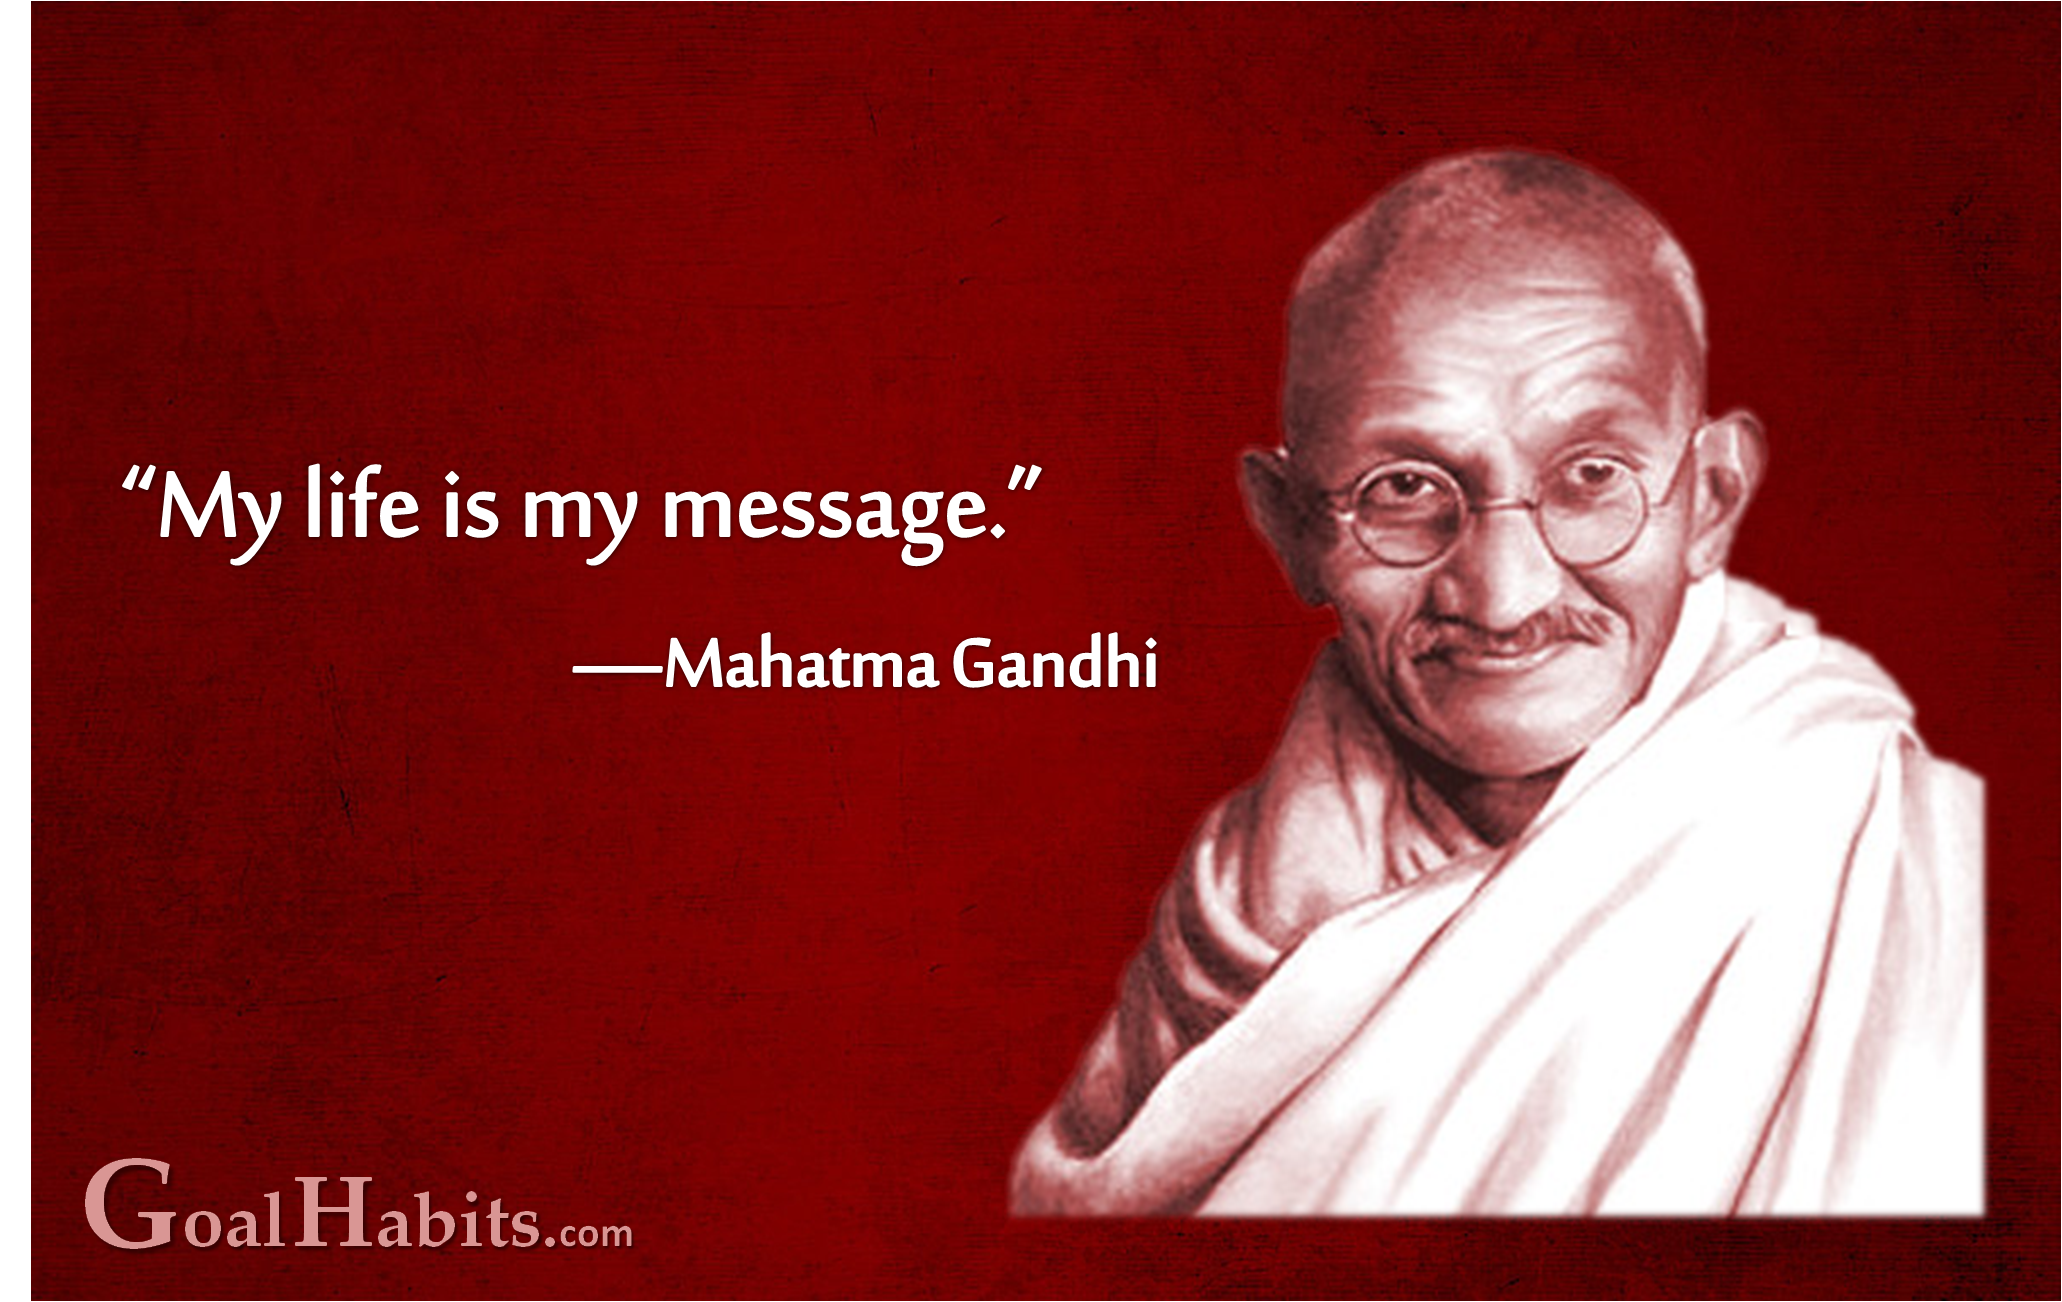 gandhi life message